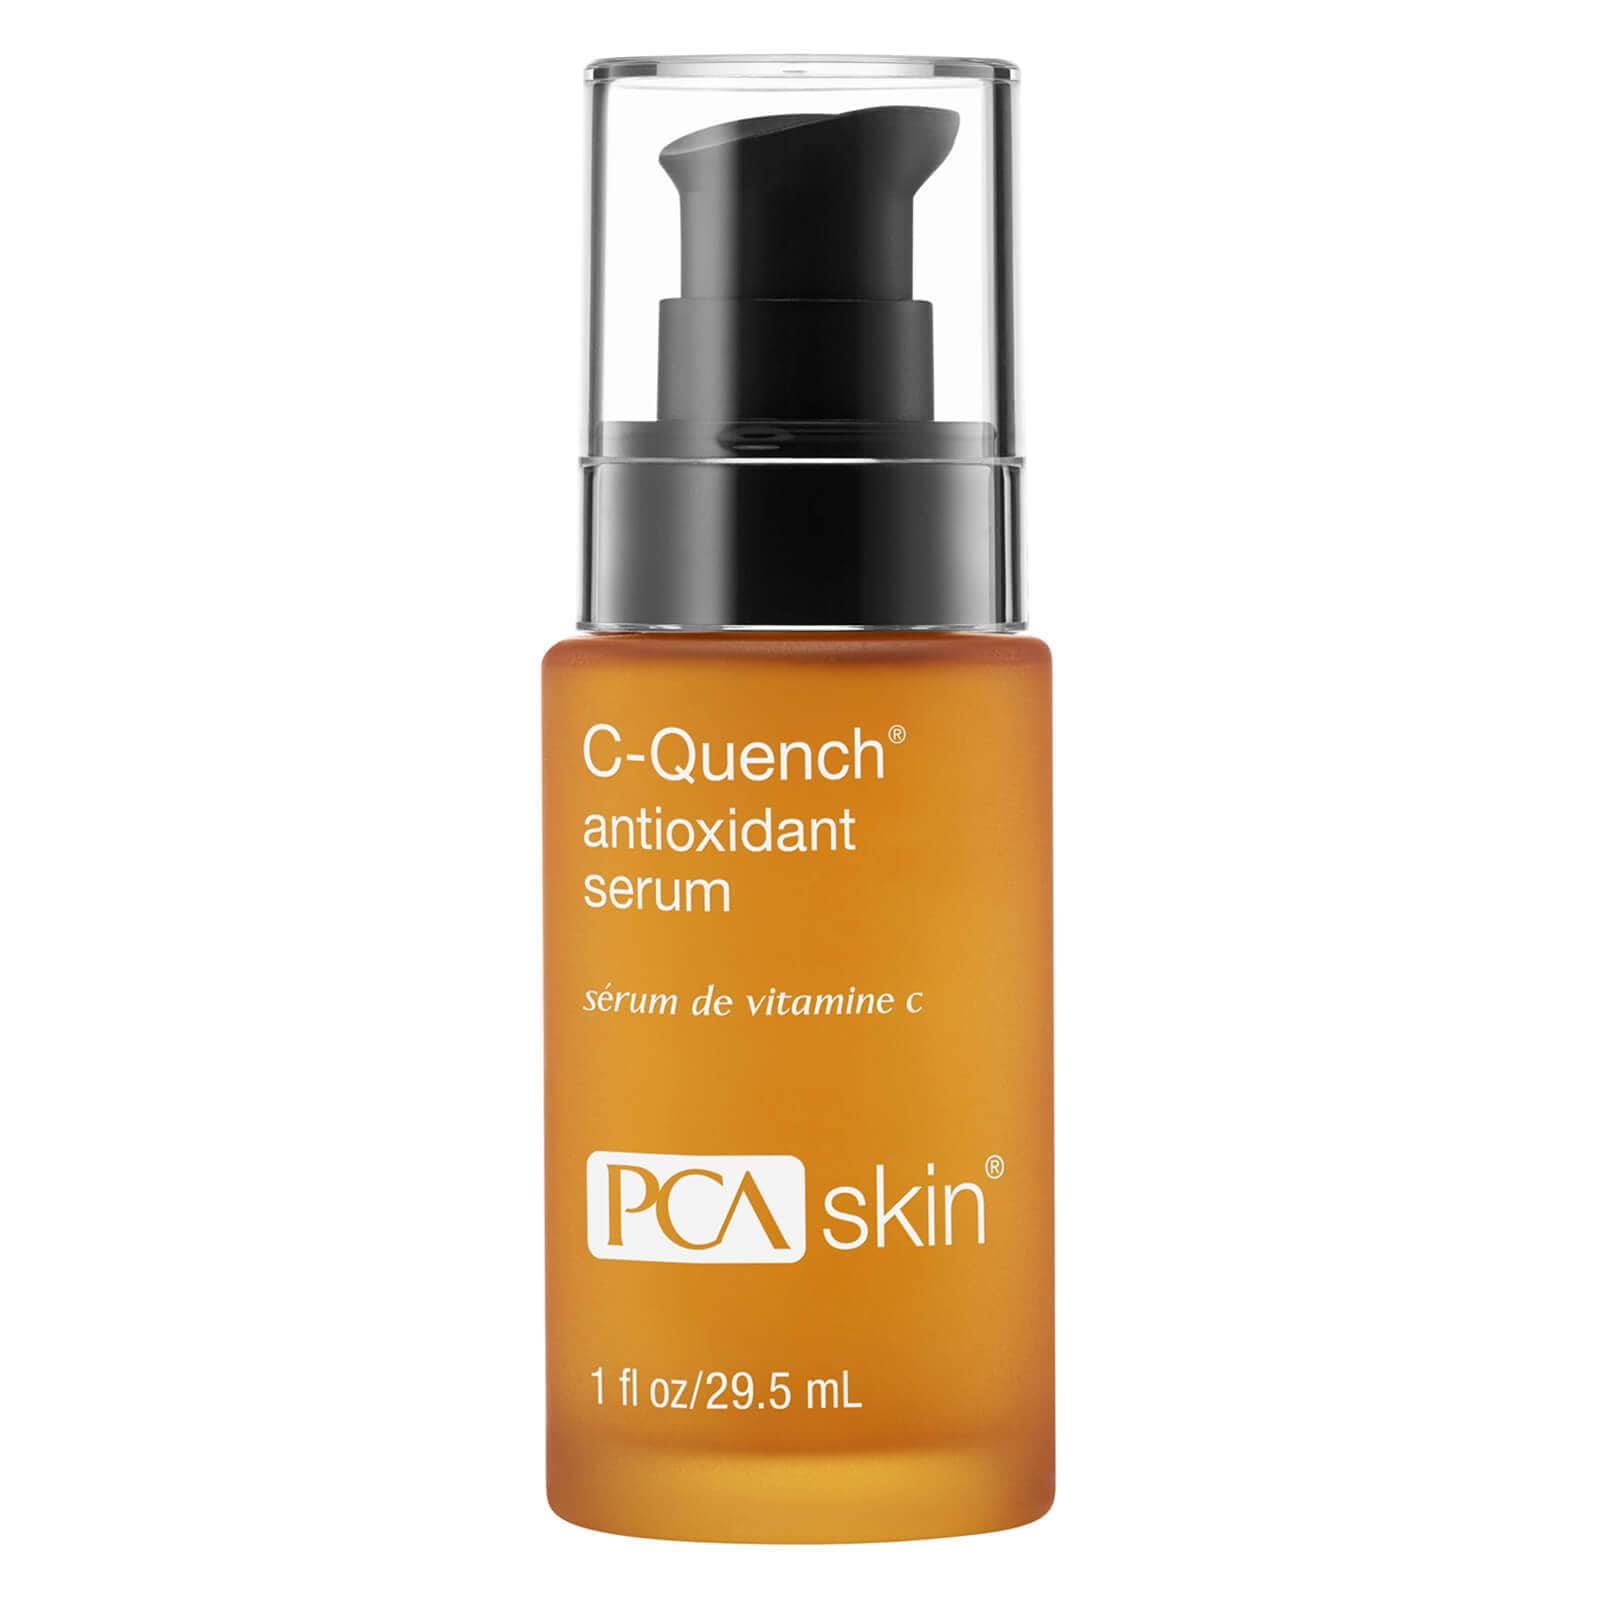 PCA SKIN C Quench Antioxidant Serum 1 oz. 0.5 oz.